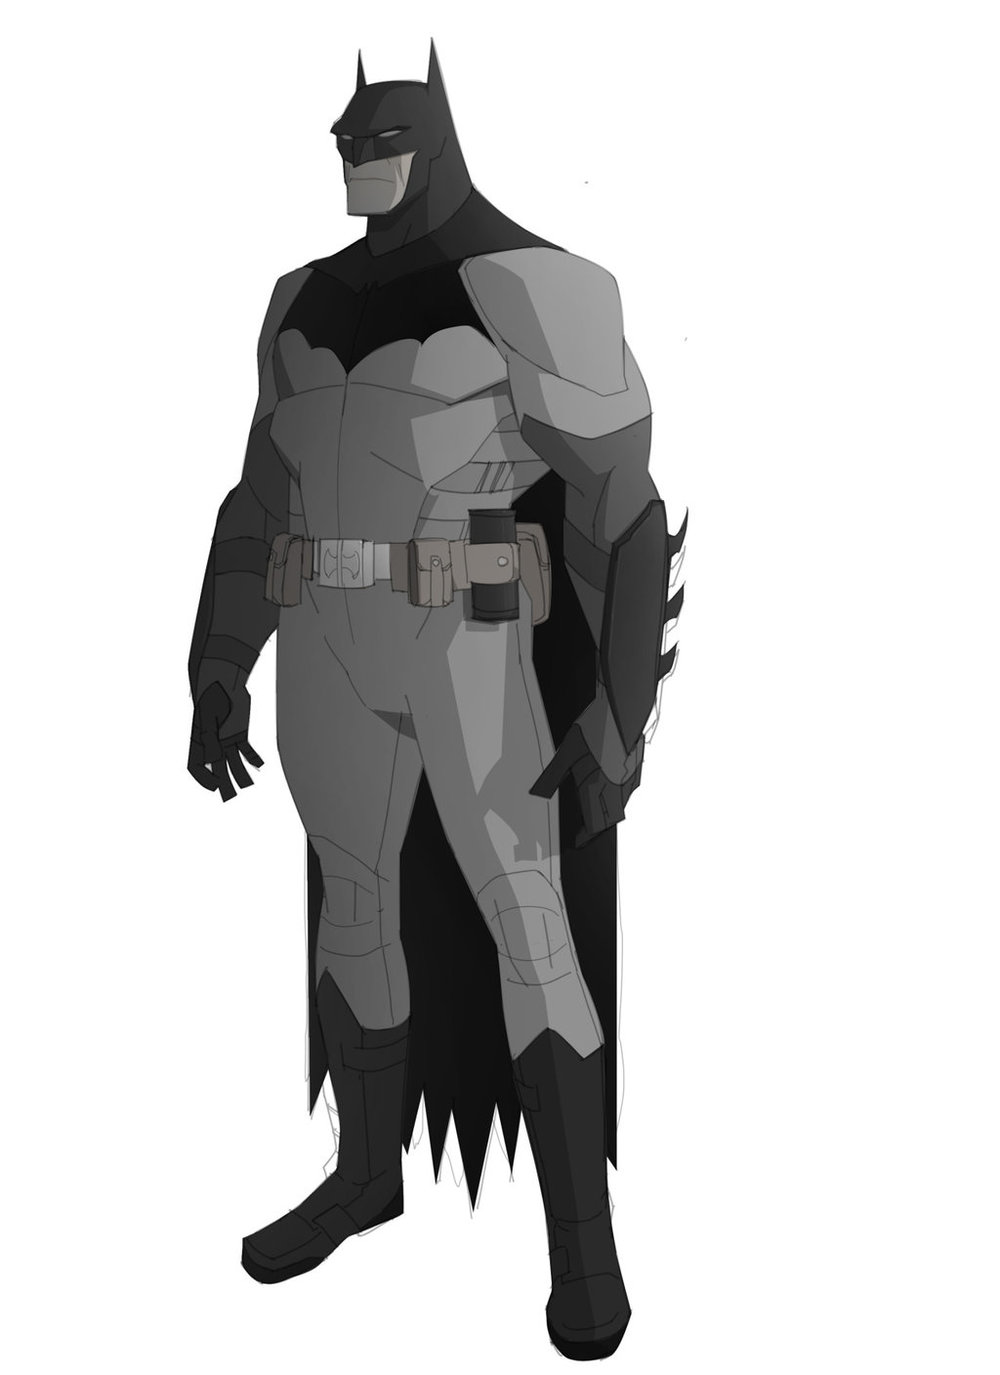 Character Design Vs Animation : Batman character design for cancelled quot dark as hell